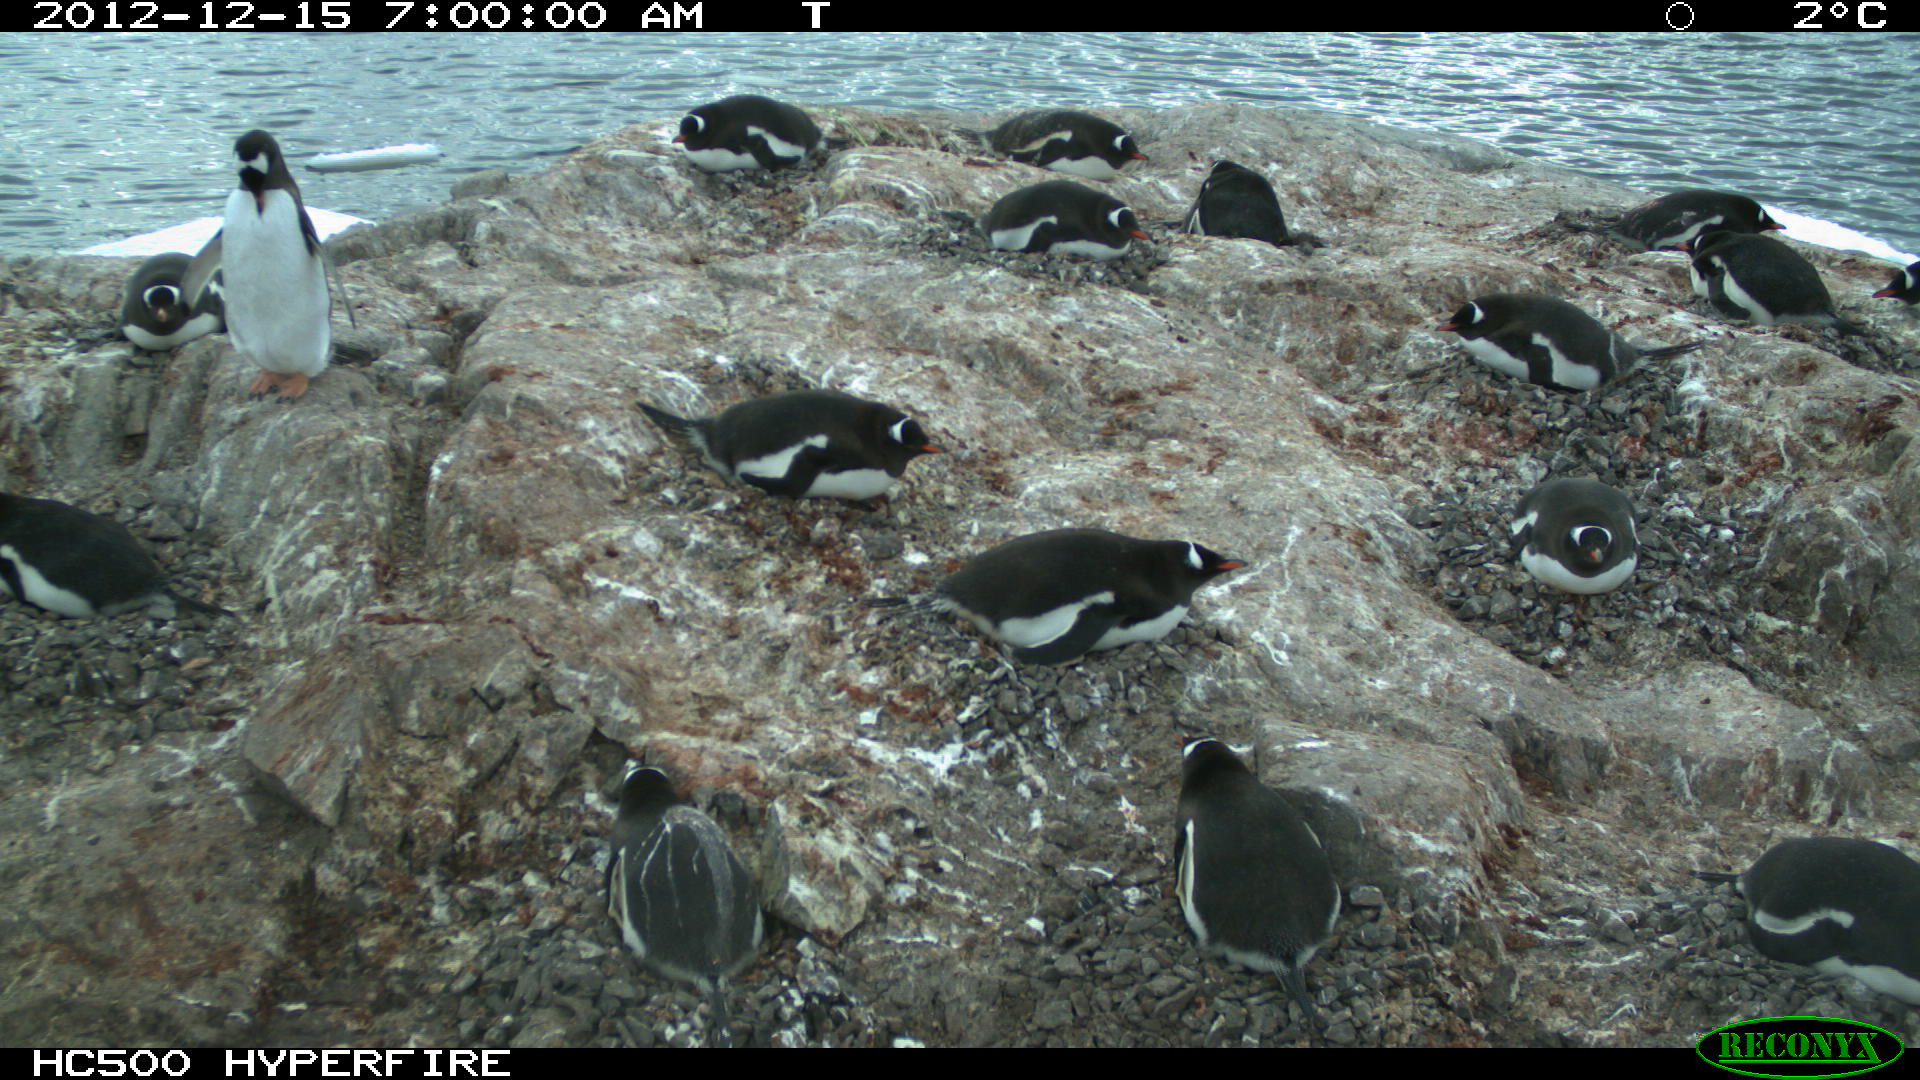 Gentoo penguins nesting at Port Lockroy, Antarctic Peninsula — one of hundreds of thousands of Penguin Watch time-lapse images.